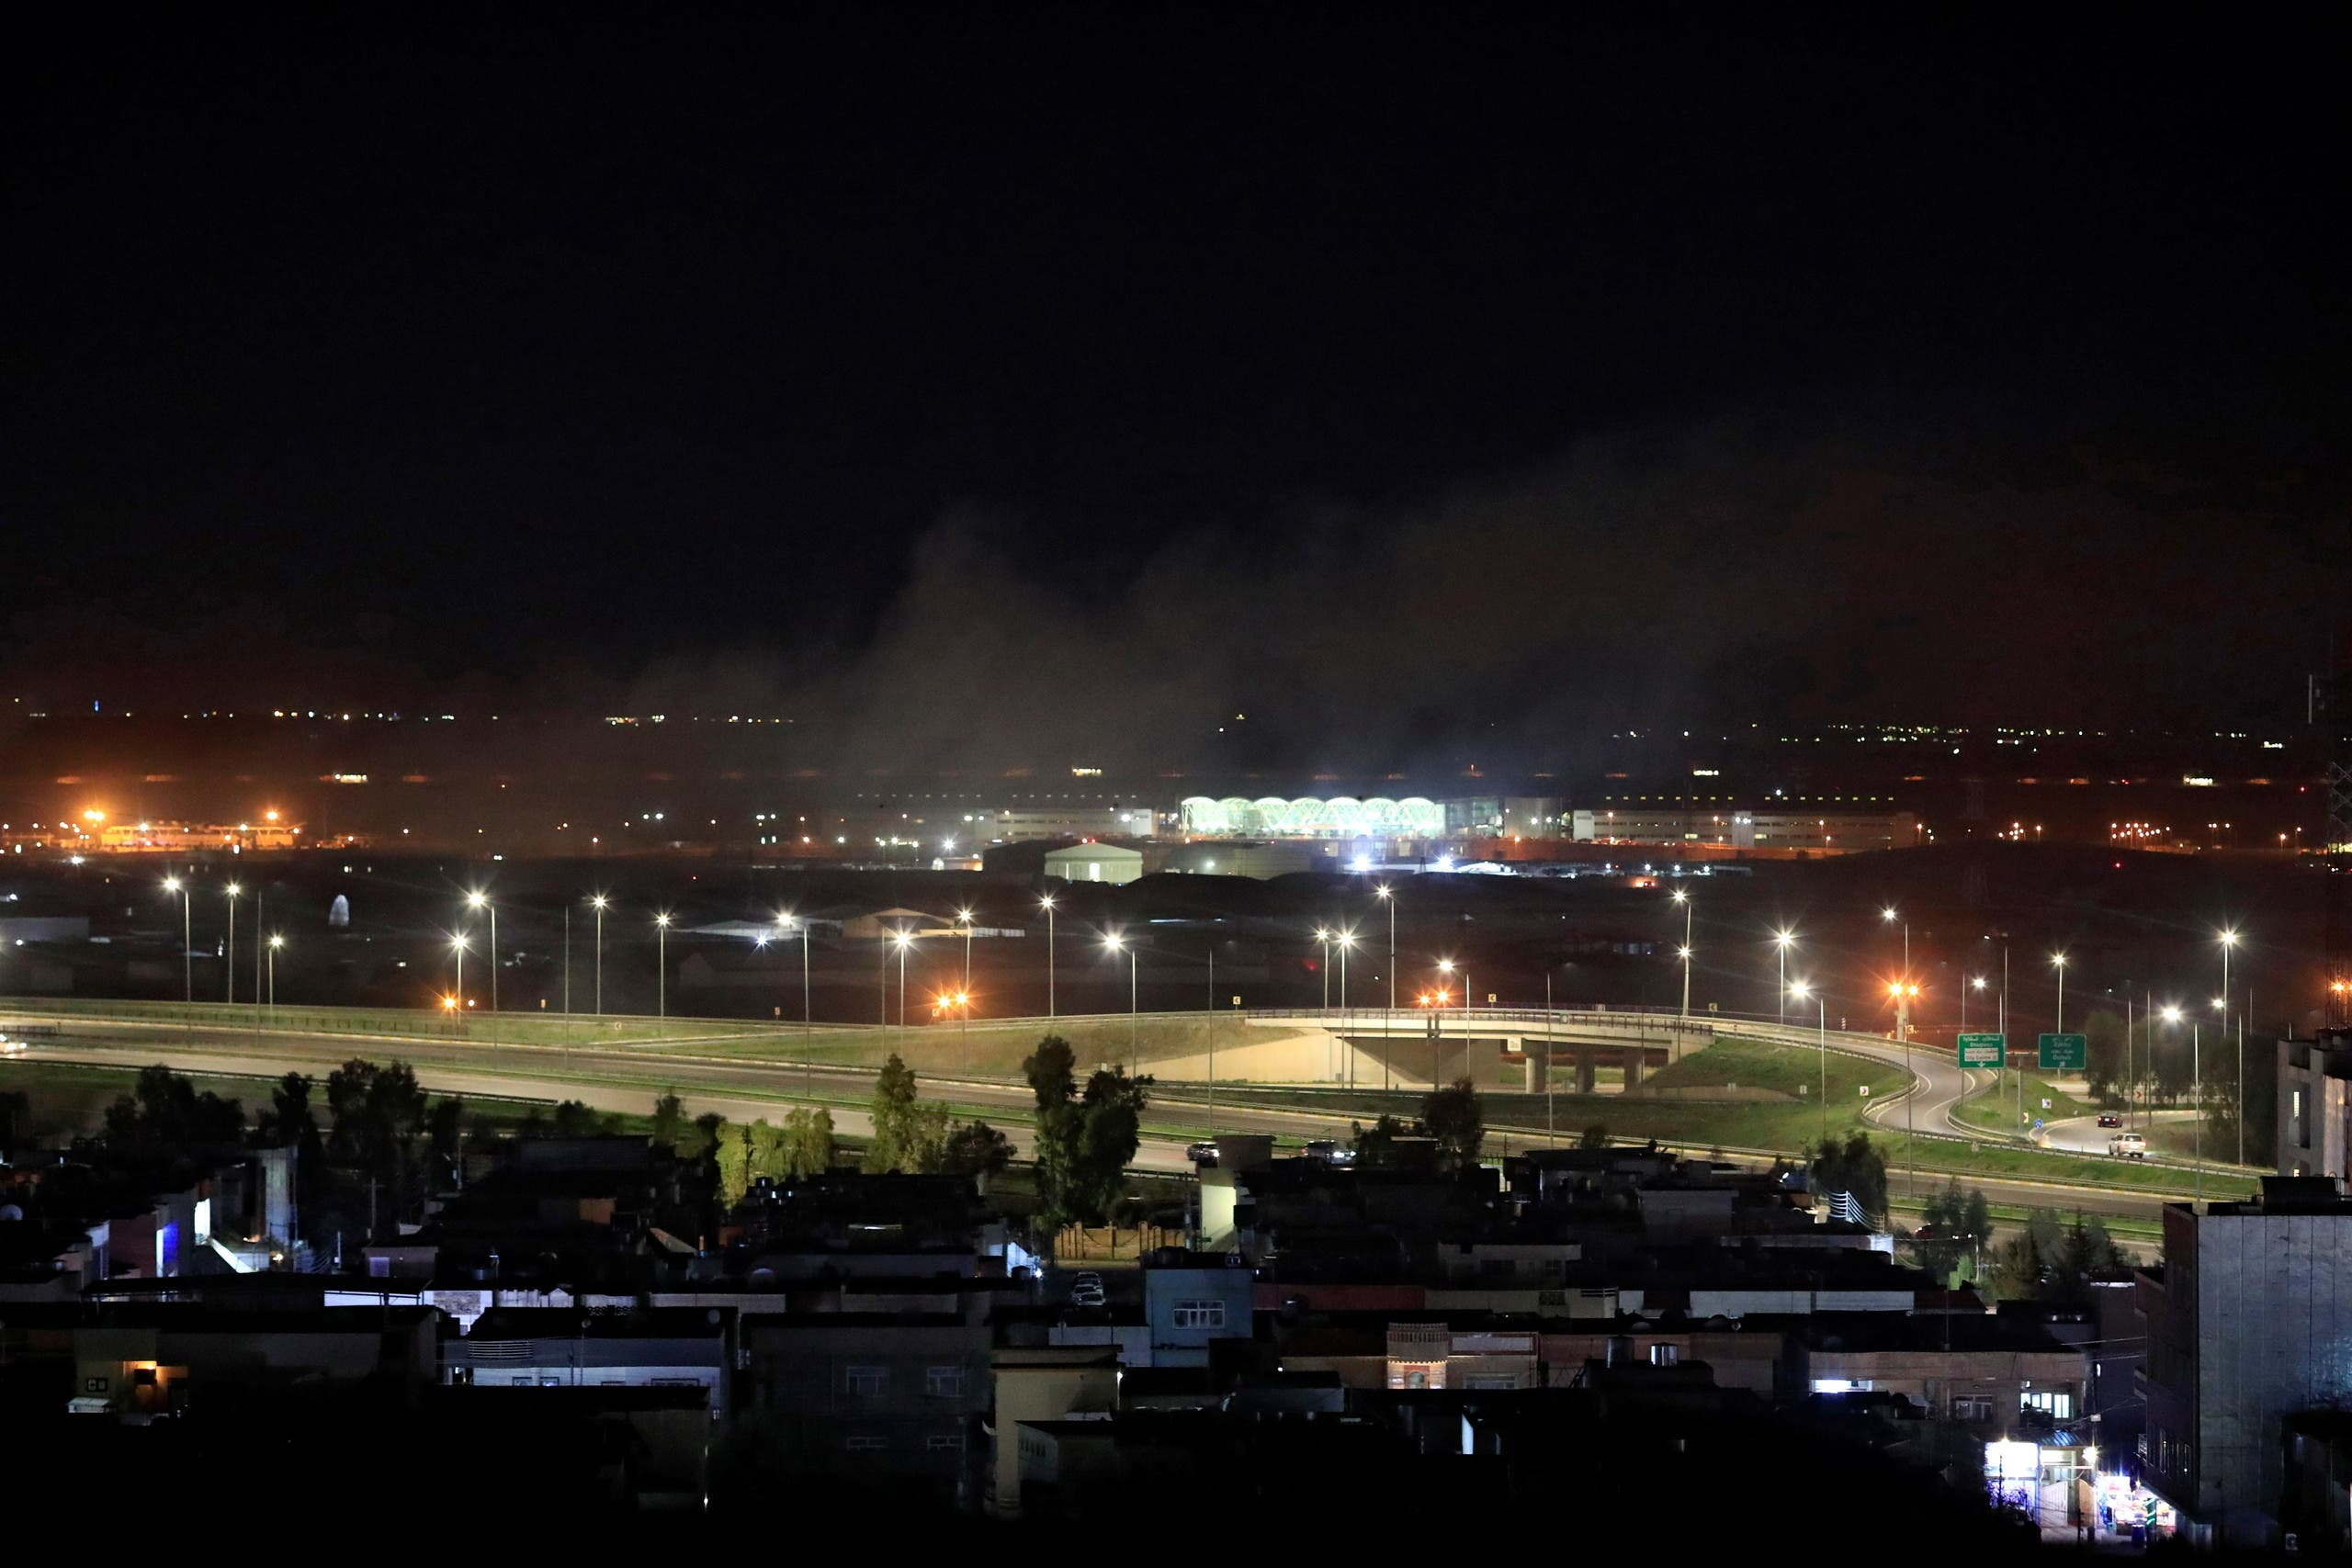 Smoke rises over the Erbil, after reports of mortar shells landing near Erbil airport, Iraq February 15, 2021. (Reuters)